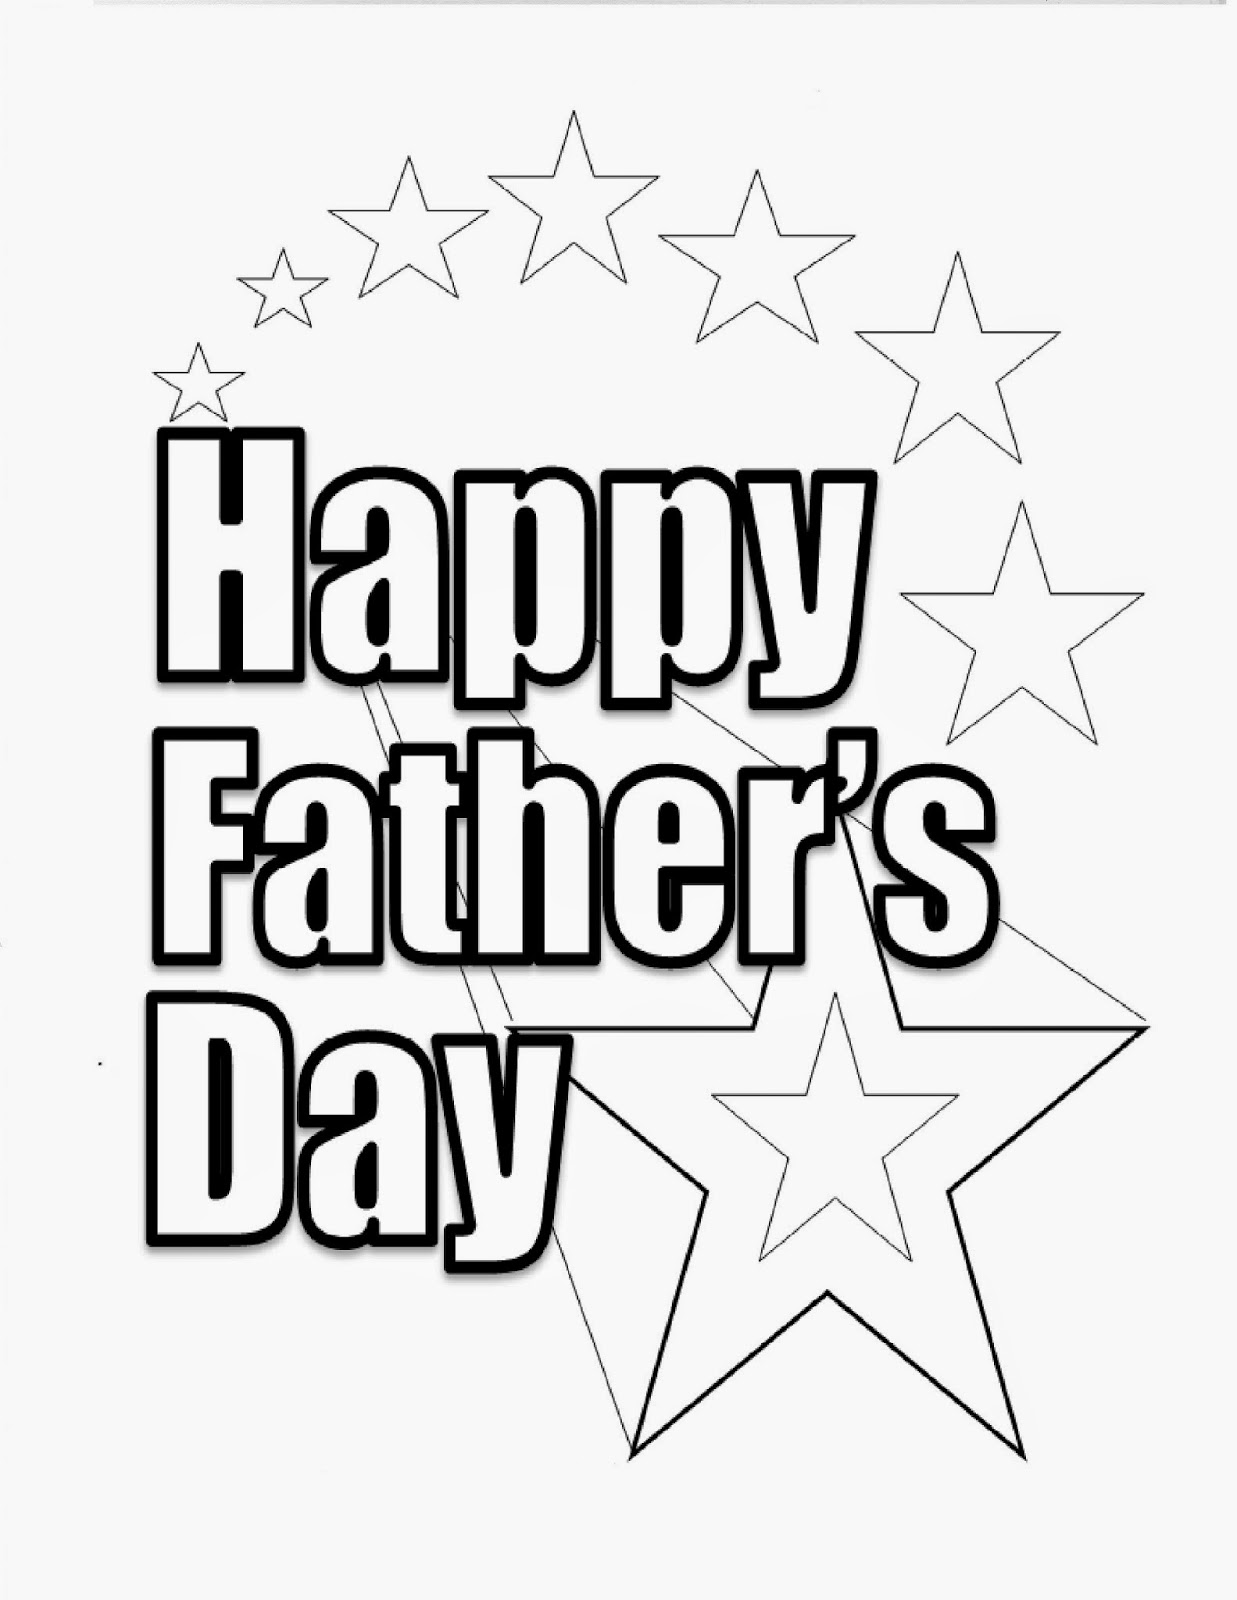 Fathers Day Coloring Pages For Grandpa at GetColorings.com